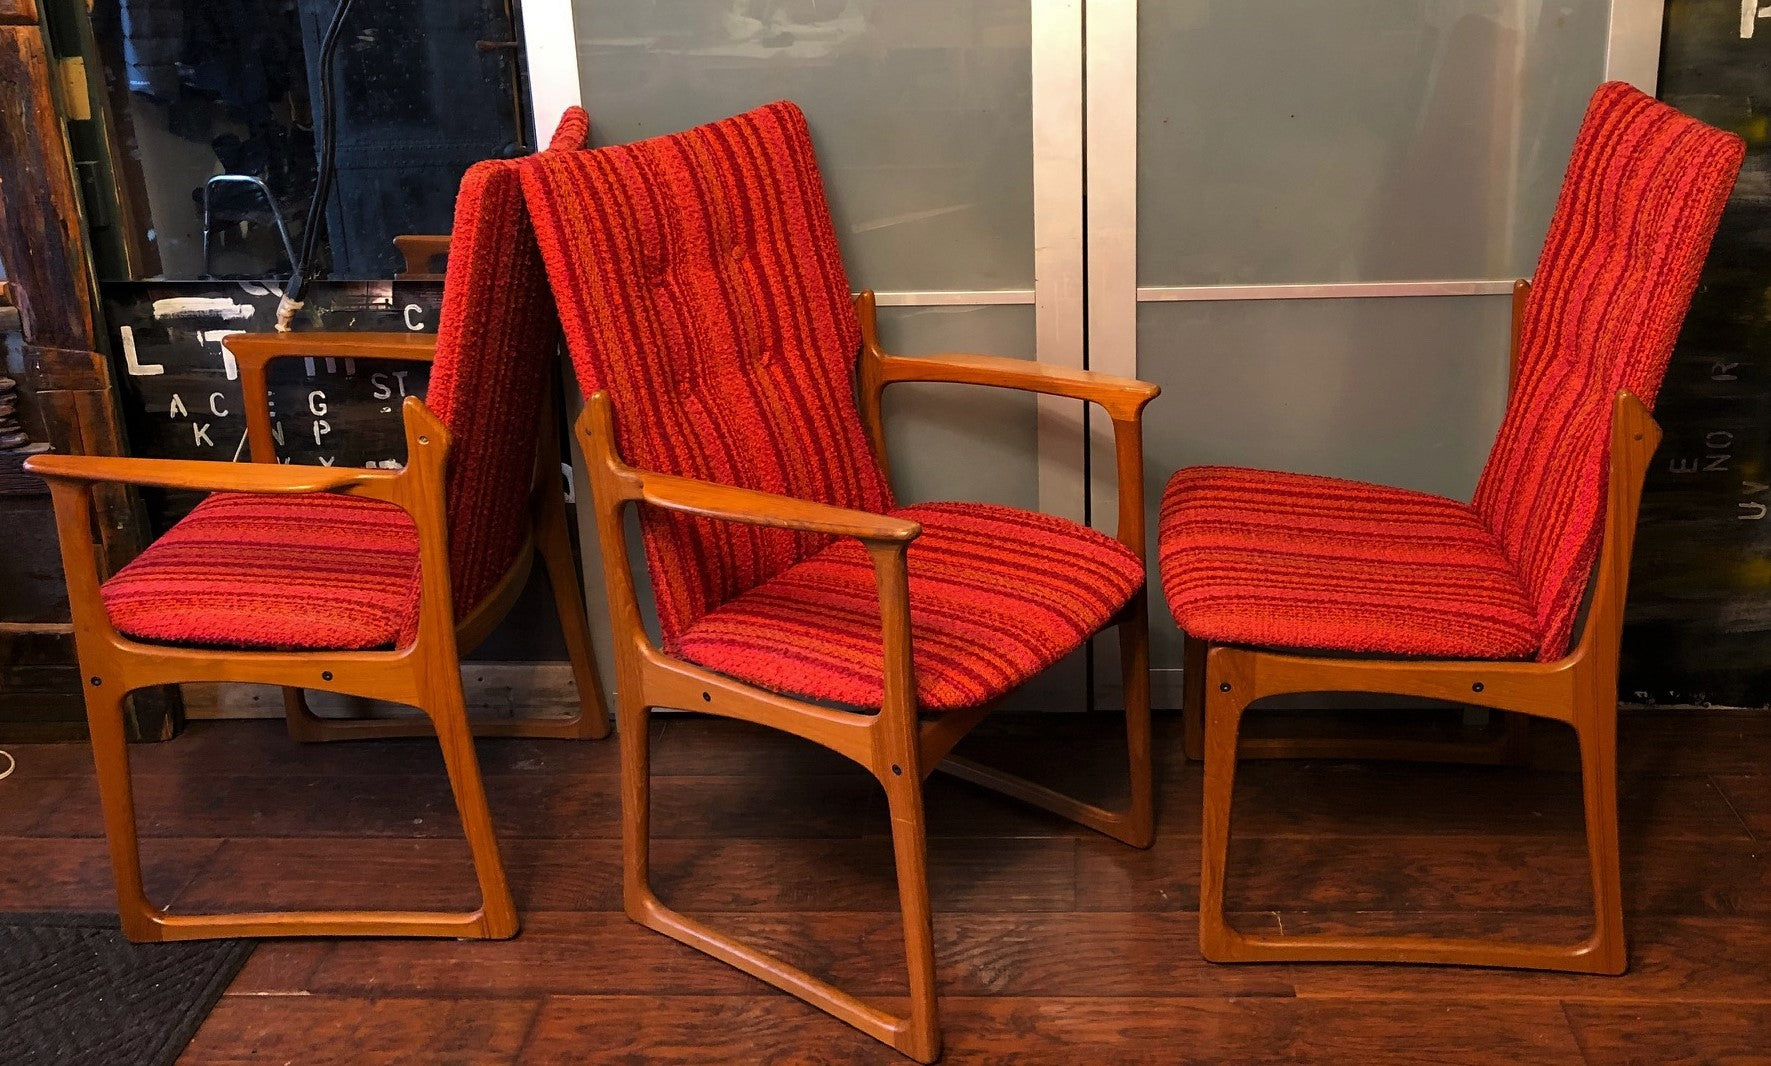 Swell 6 Danish Mcm Solid Teak Dining Chairs Restored By Vamdrup Stolefabrik Each 199 Beatyapartments Chair Design Images Beatyapartmentscom